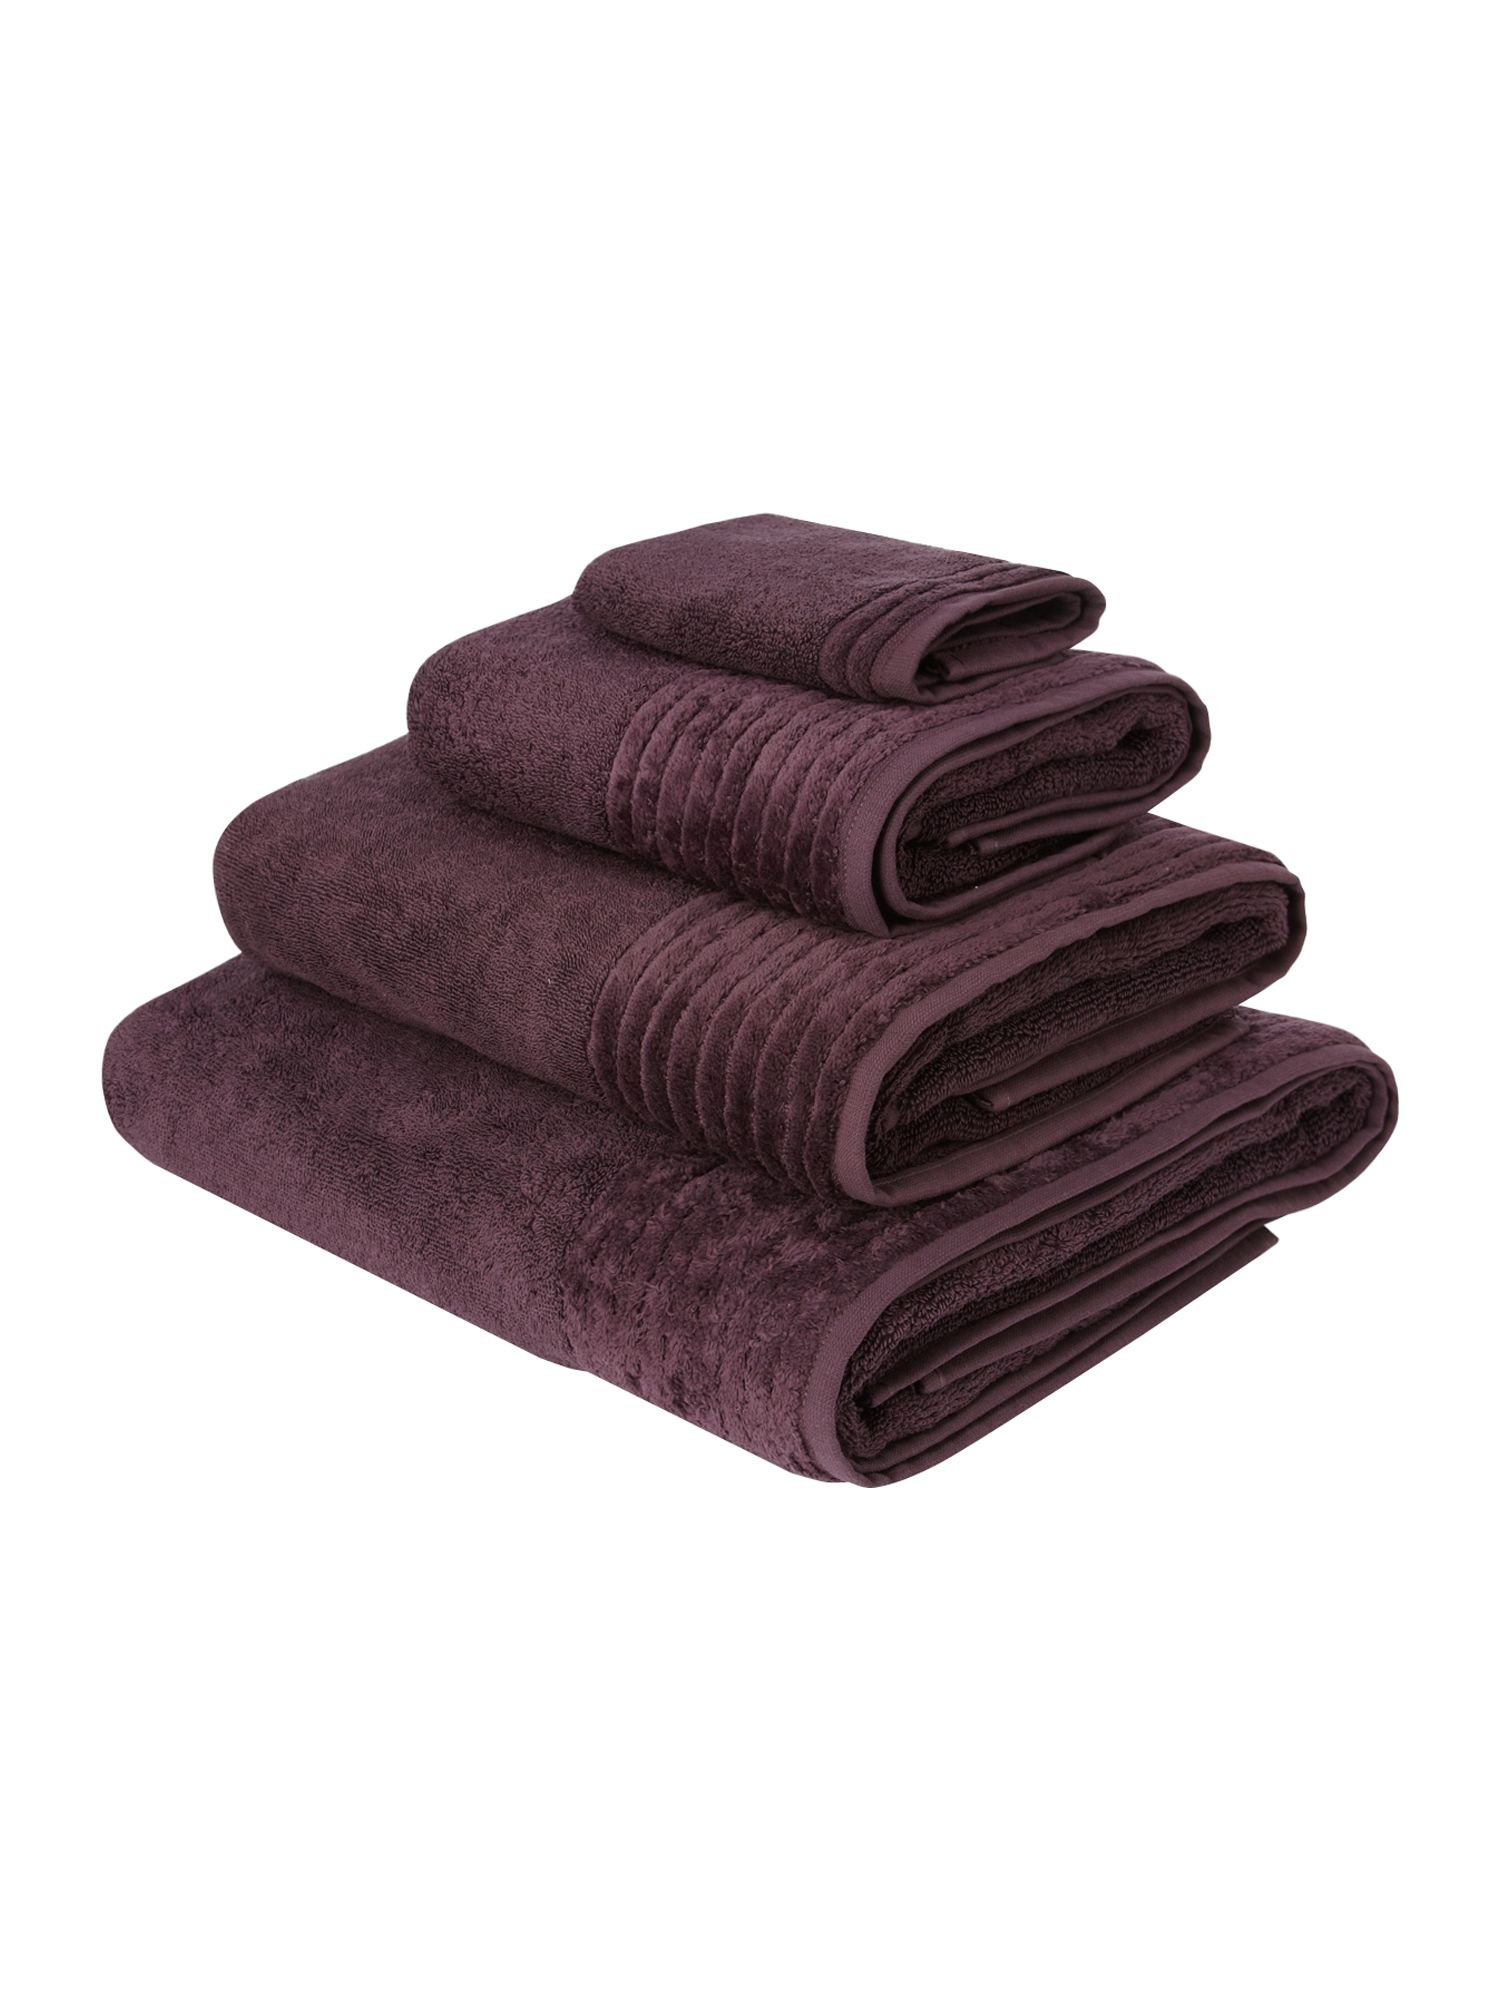 Spa supima cotton towels in aubergine